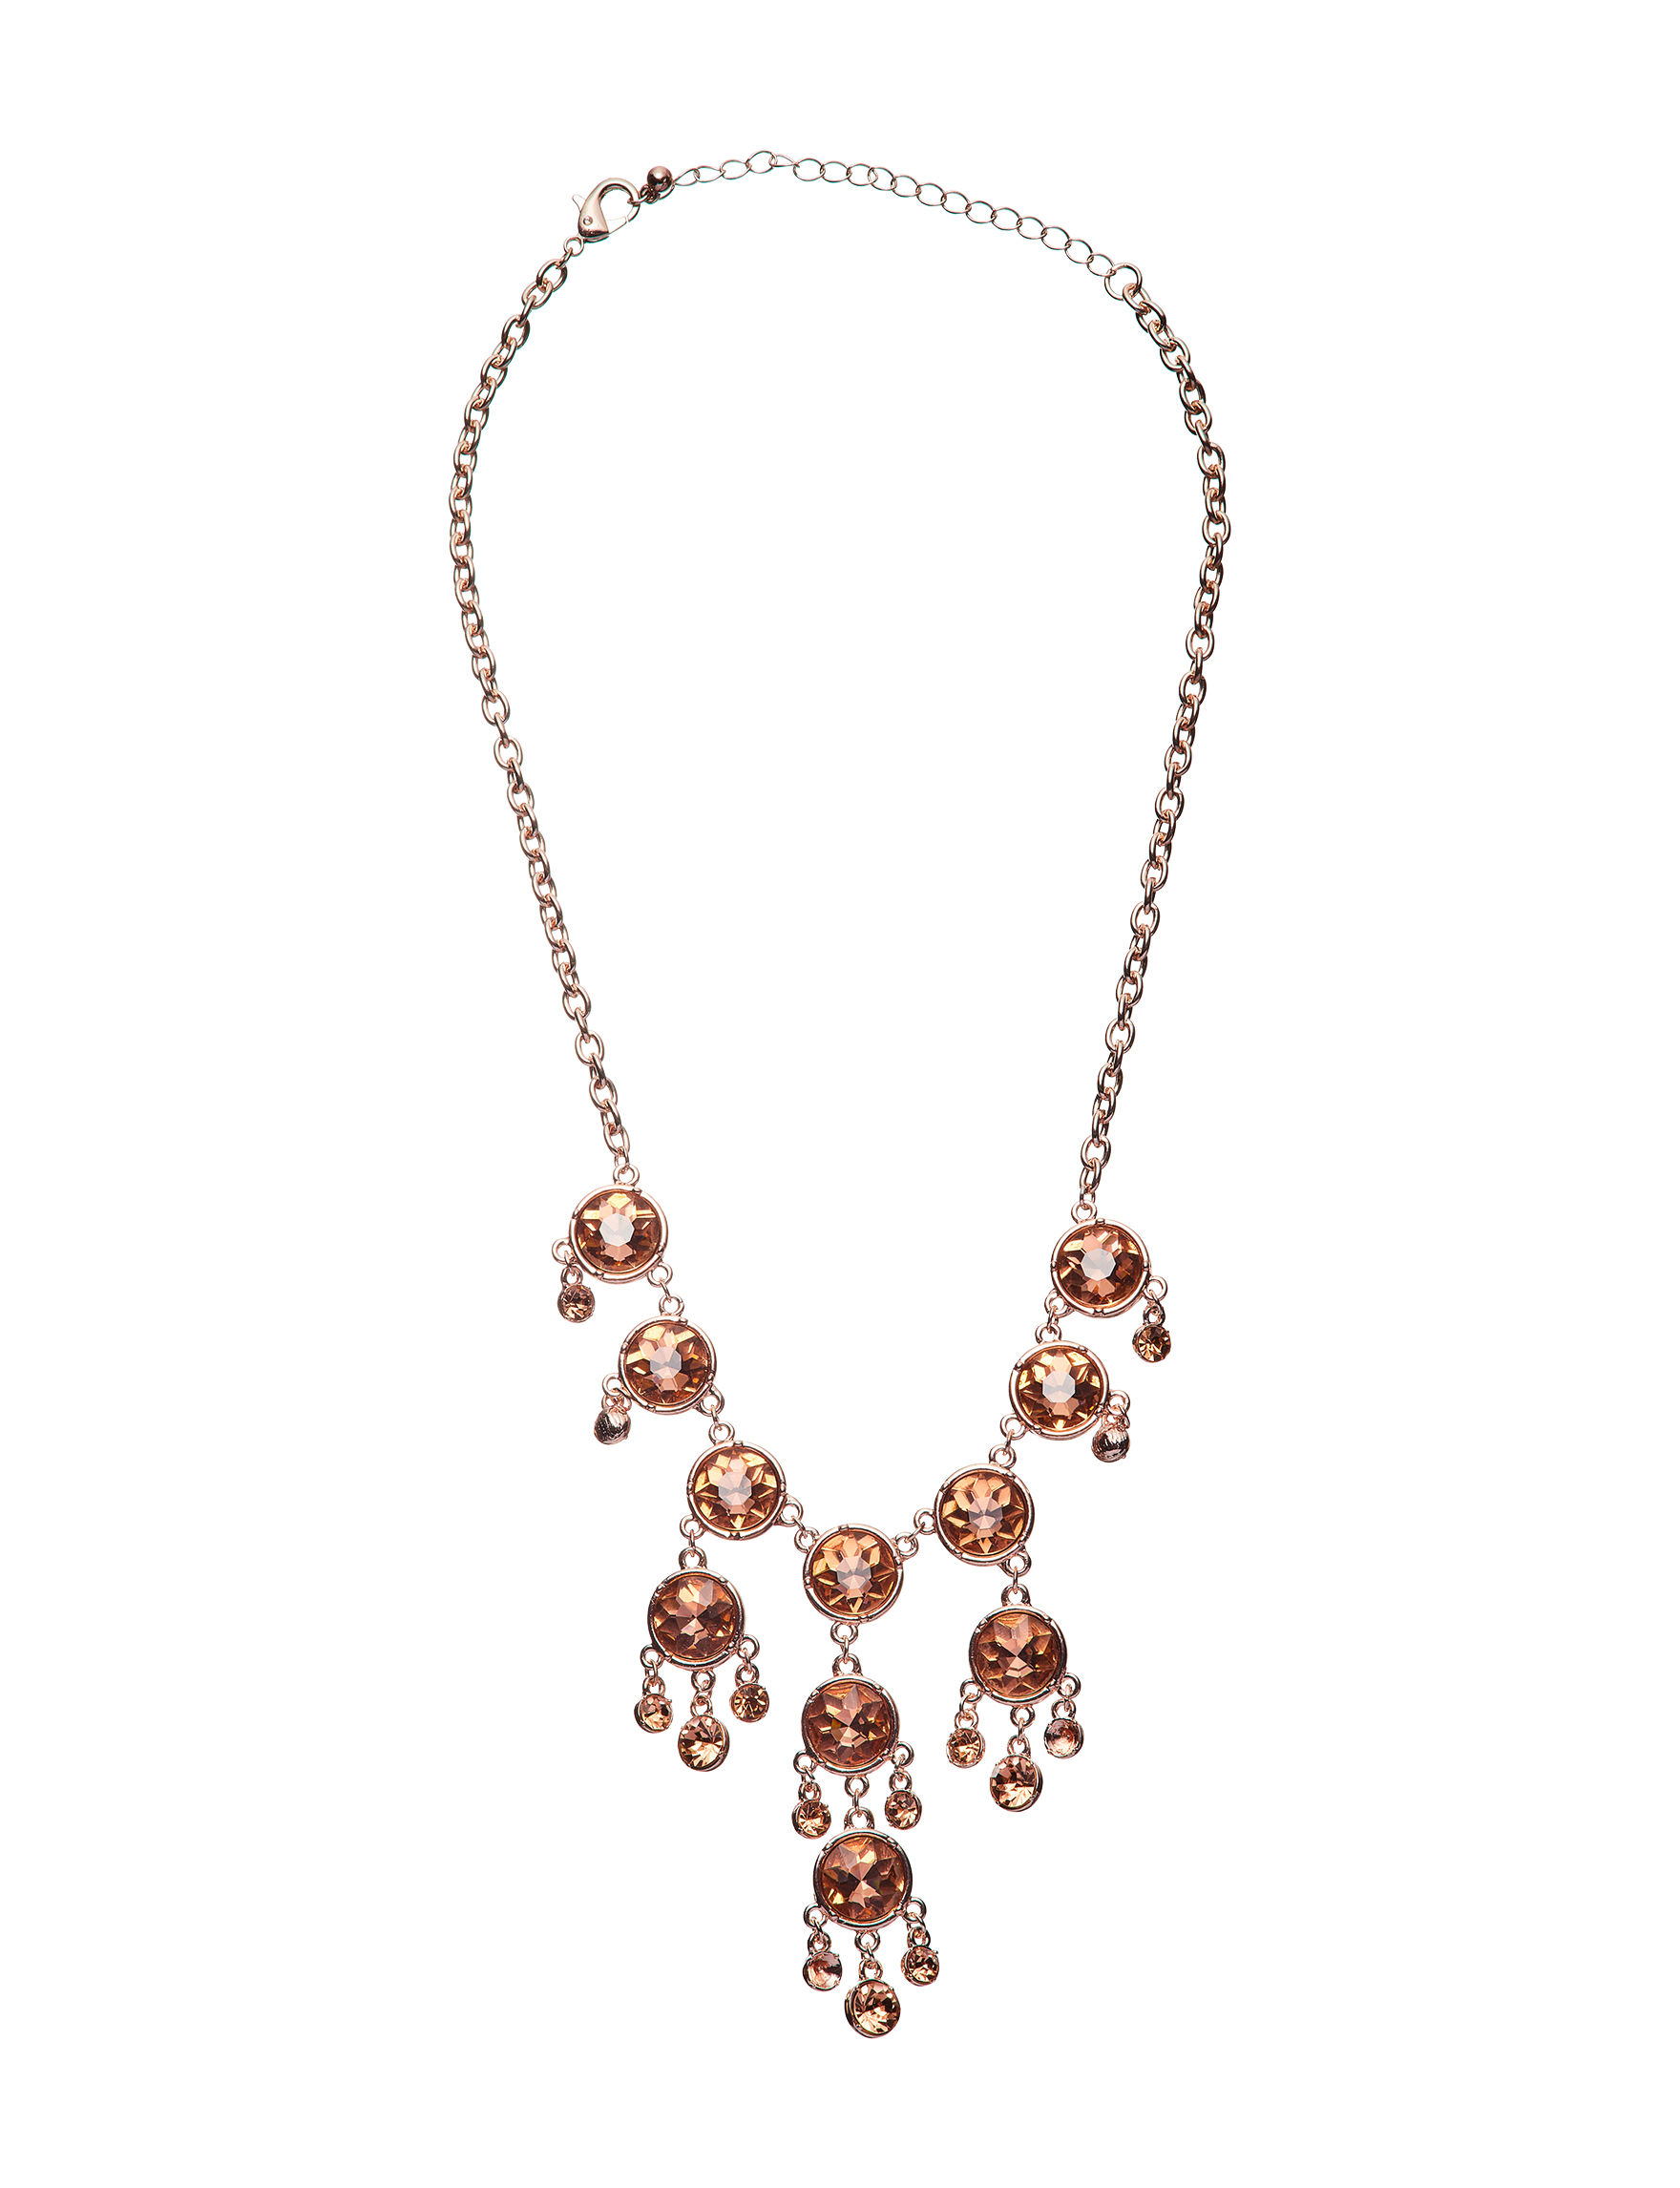 Hannah Rose Gold Necklaces & Pendants Fashion Jewelry